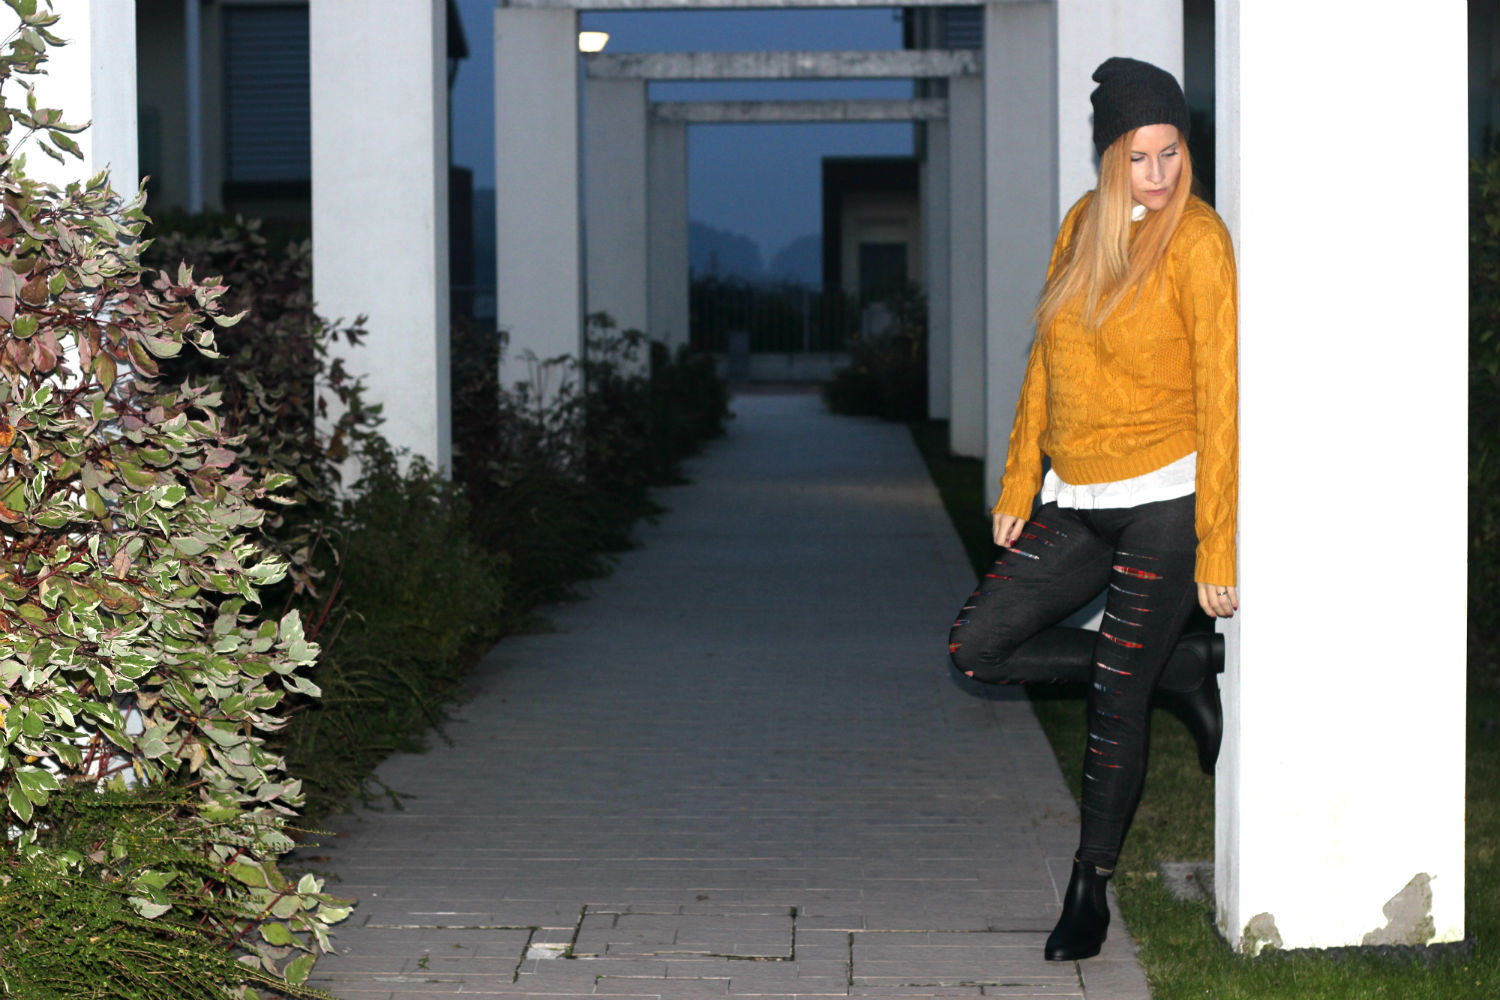 elisabetta bertolini total look OVS fw2015 - fashion blogger italia - incita 6 mesi